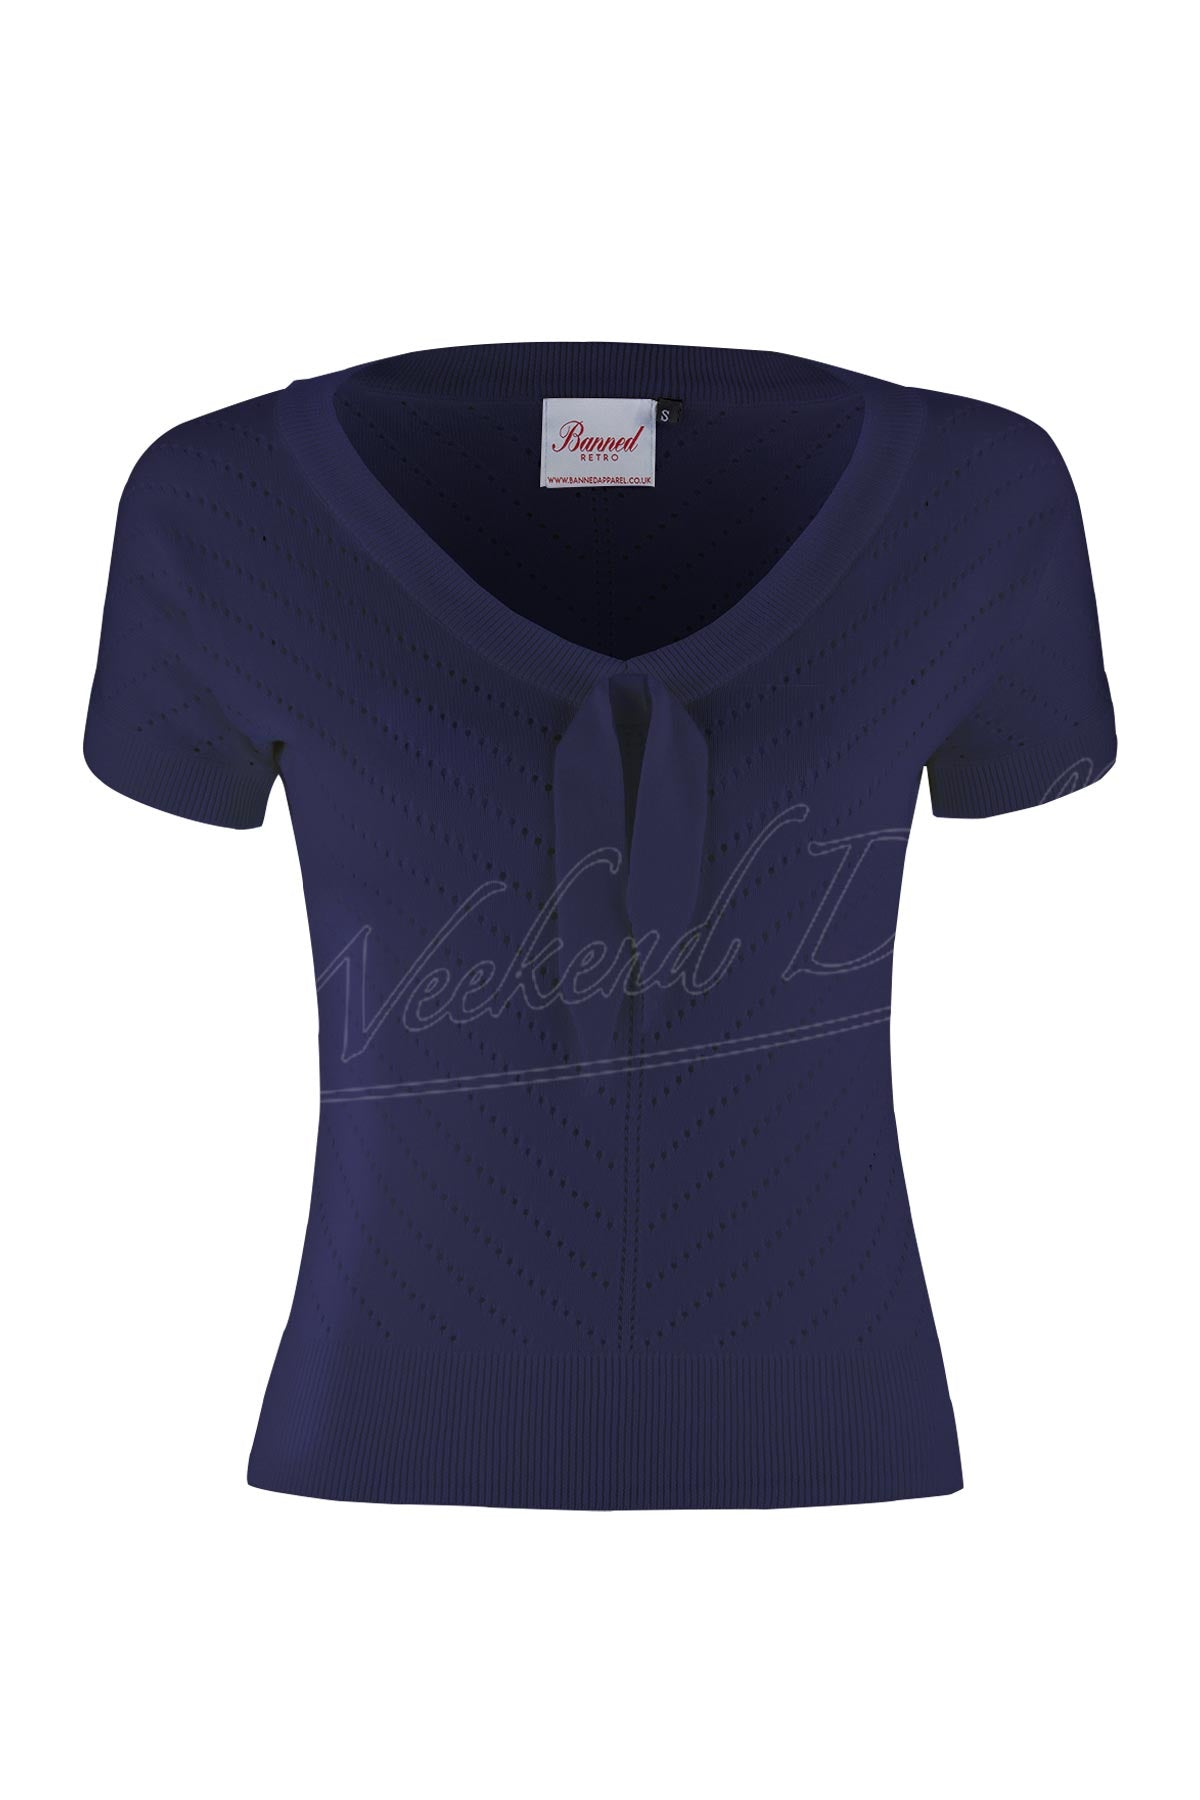 Retro V-neck Bow Pointelle Top in Navy